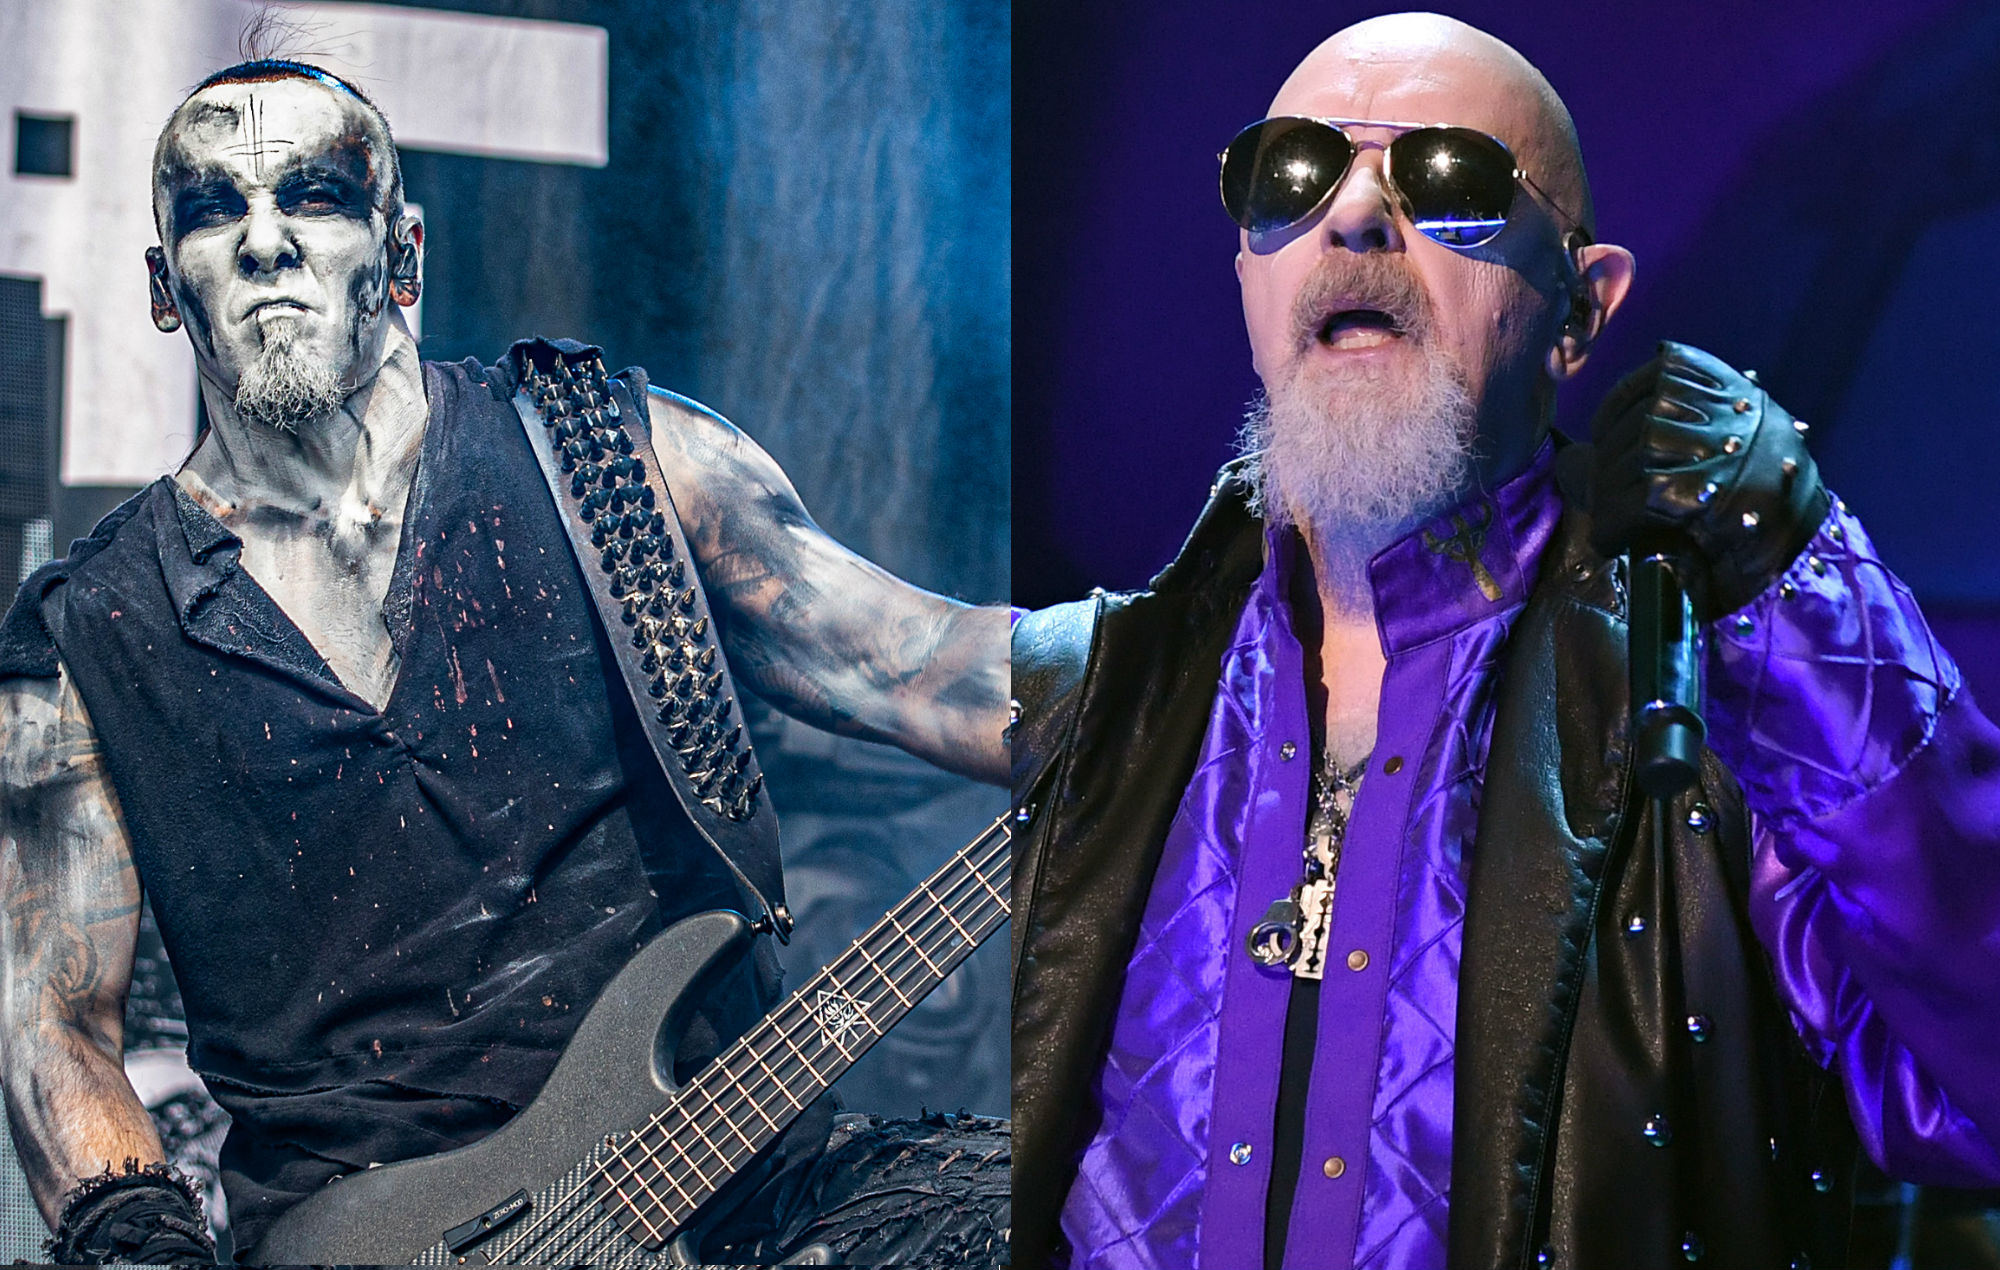 Behemoth Judas Priest